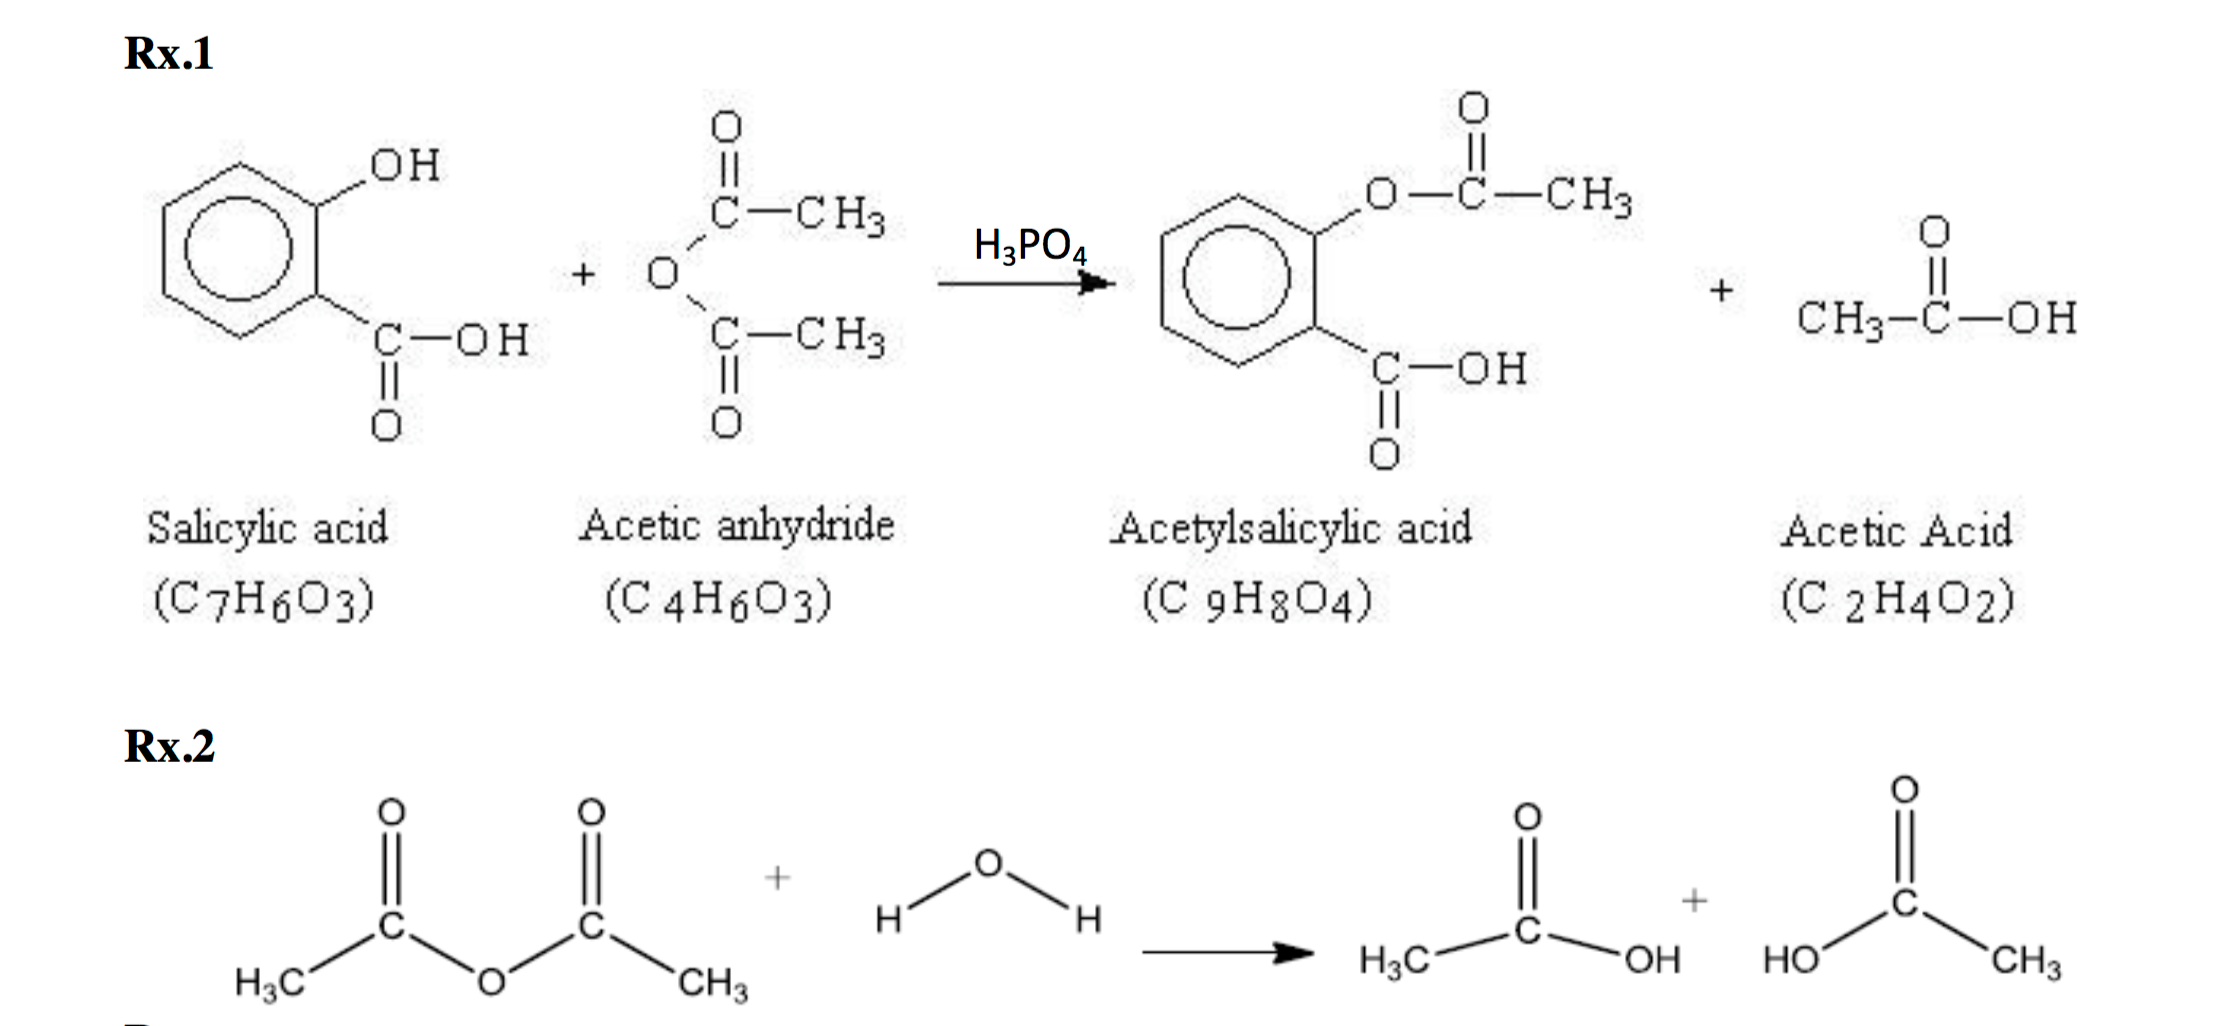 reaction mechanism of salicylic acid The kolbe–schmitt reaction or kolbe process is a carboxylation chemical  reaction that  the final product is an aromatic hydroxy acid which is also known  as salicylic acid (the precursor to aspirin)  acid kolbe–schmitt reaction  mechanism.